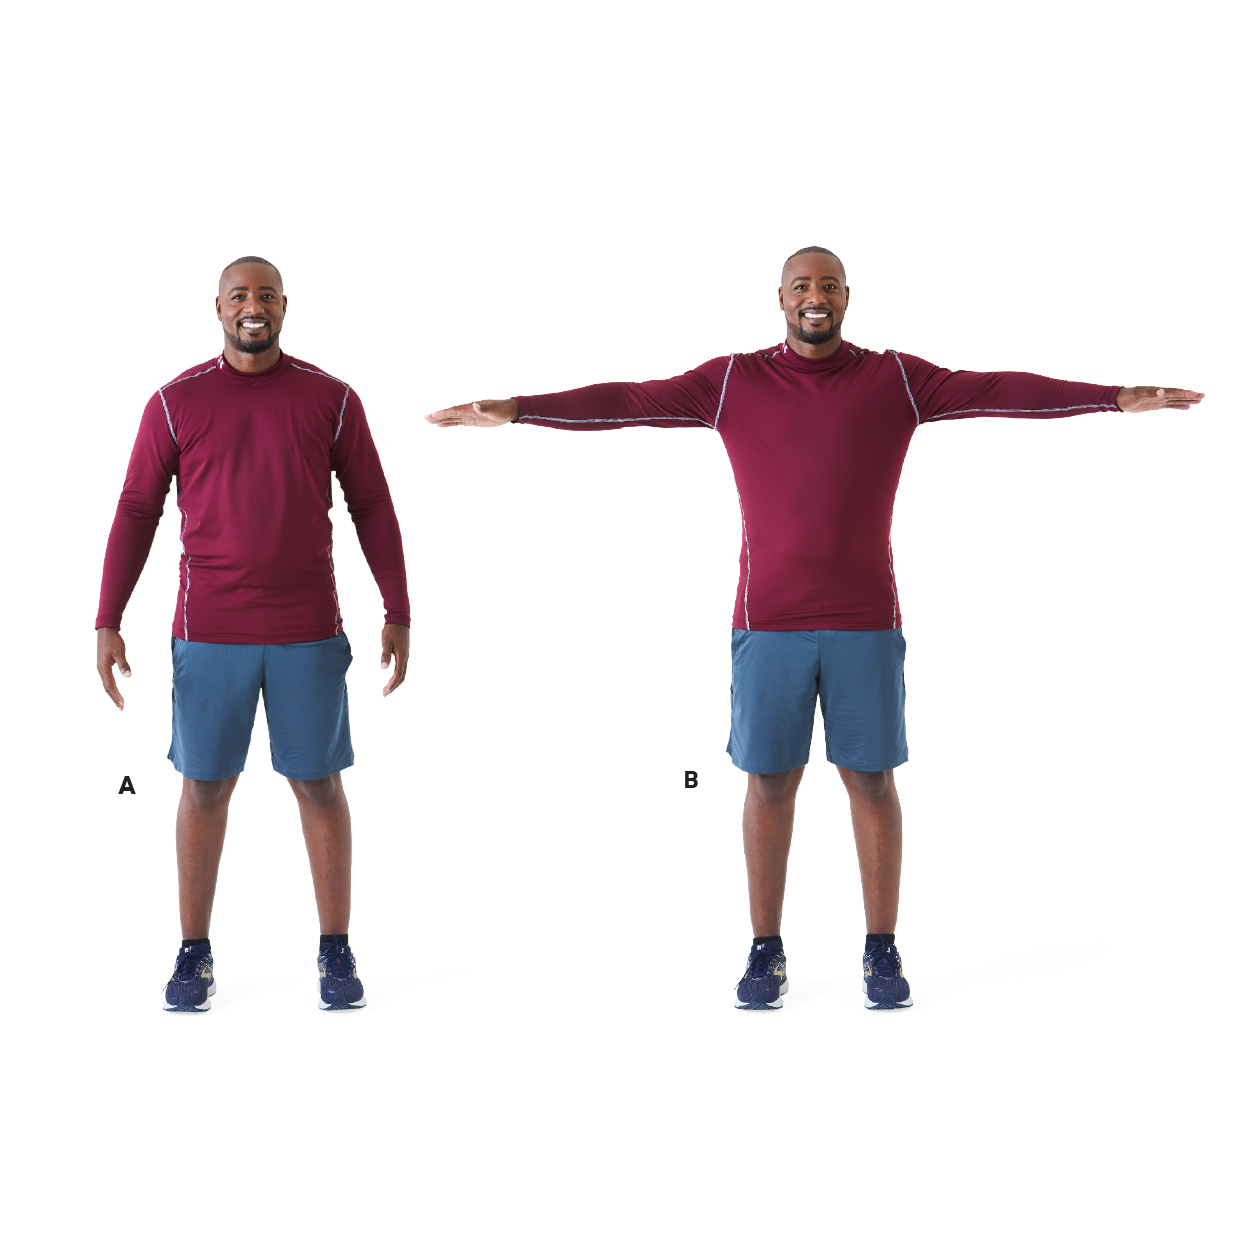 warm up - man demonstrating shoulder raise exercise